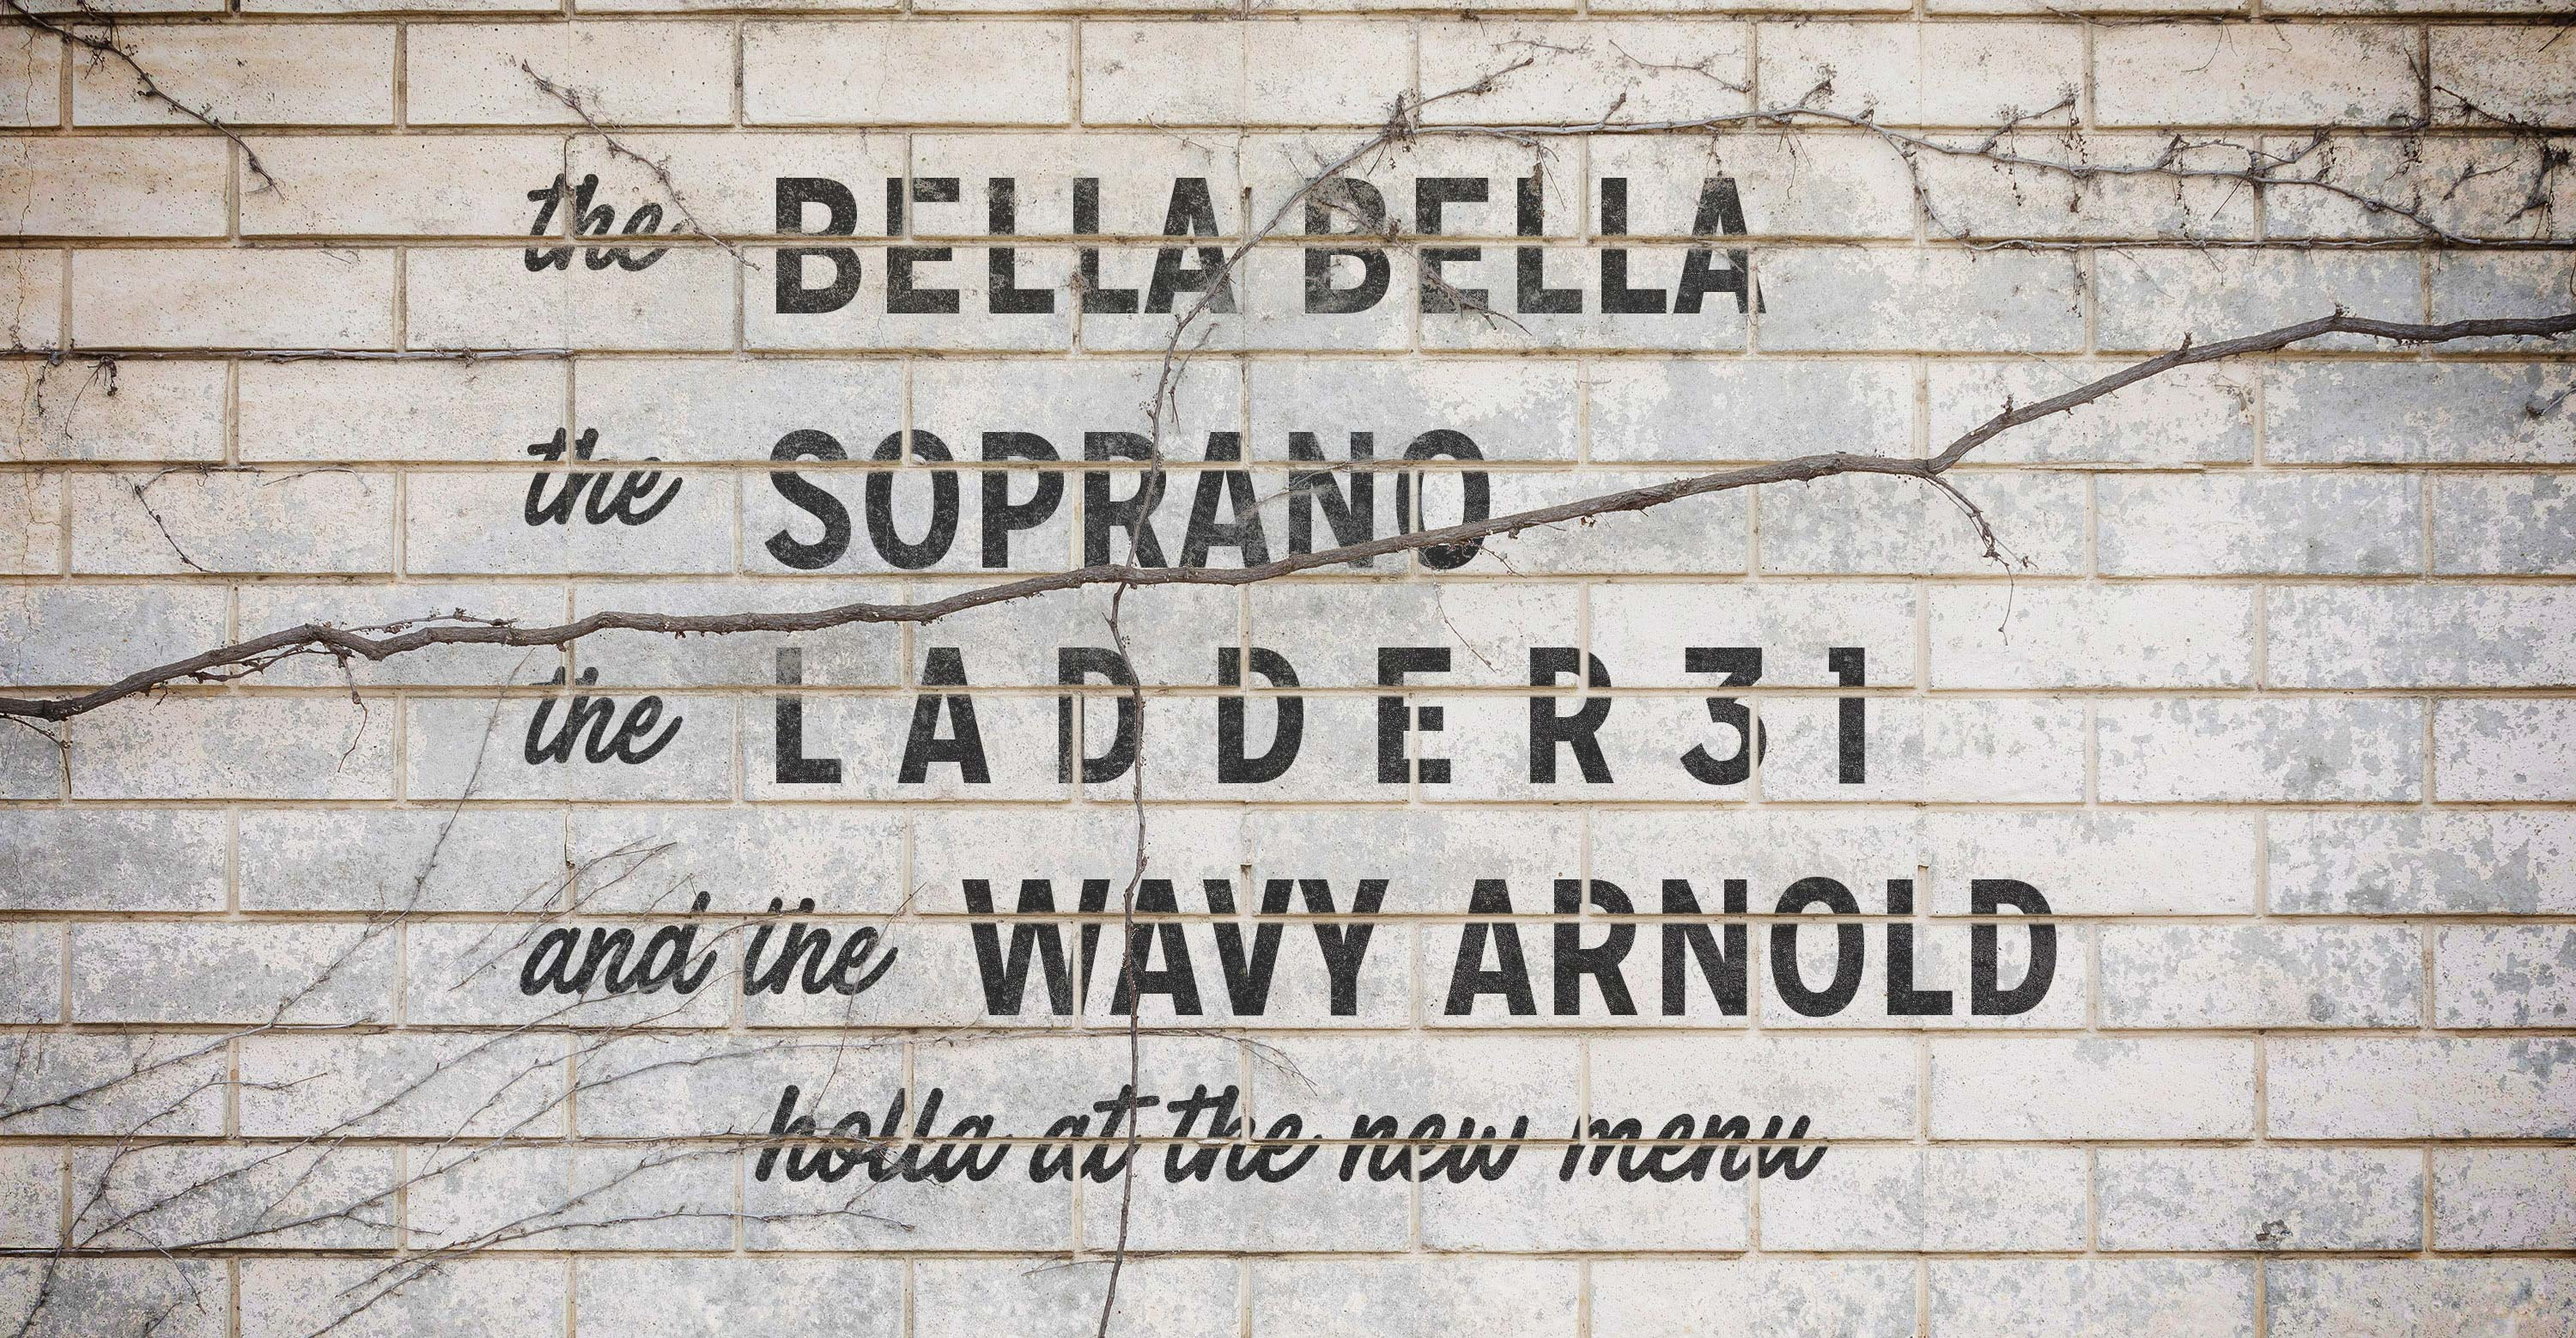 Holla At the New Menu — Introducing the Bella Bella, the Soprano, the Ladder 31, & the Wavy Arnold.